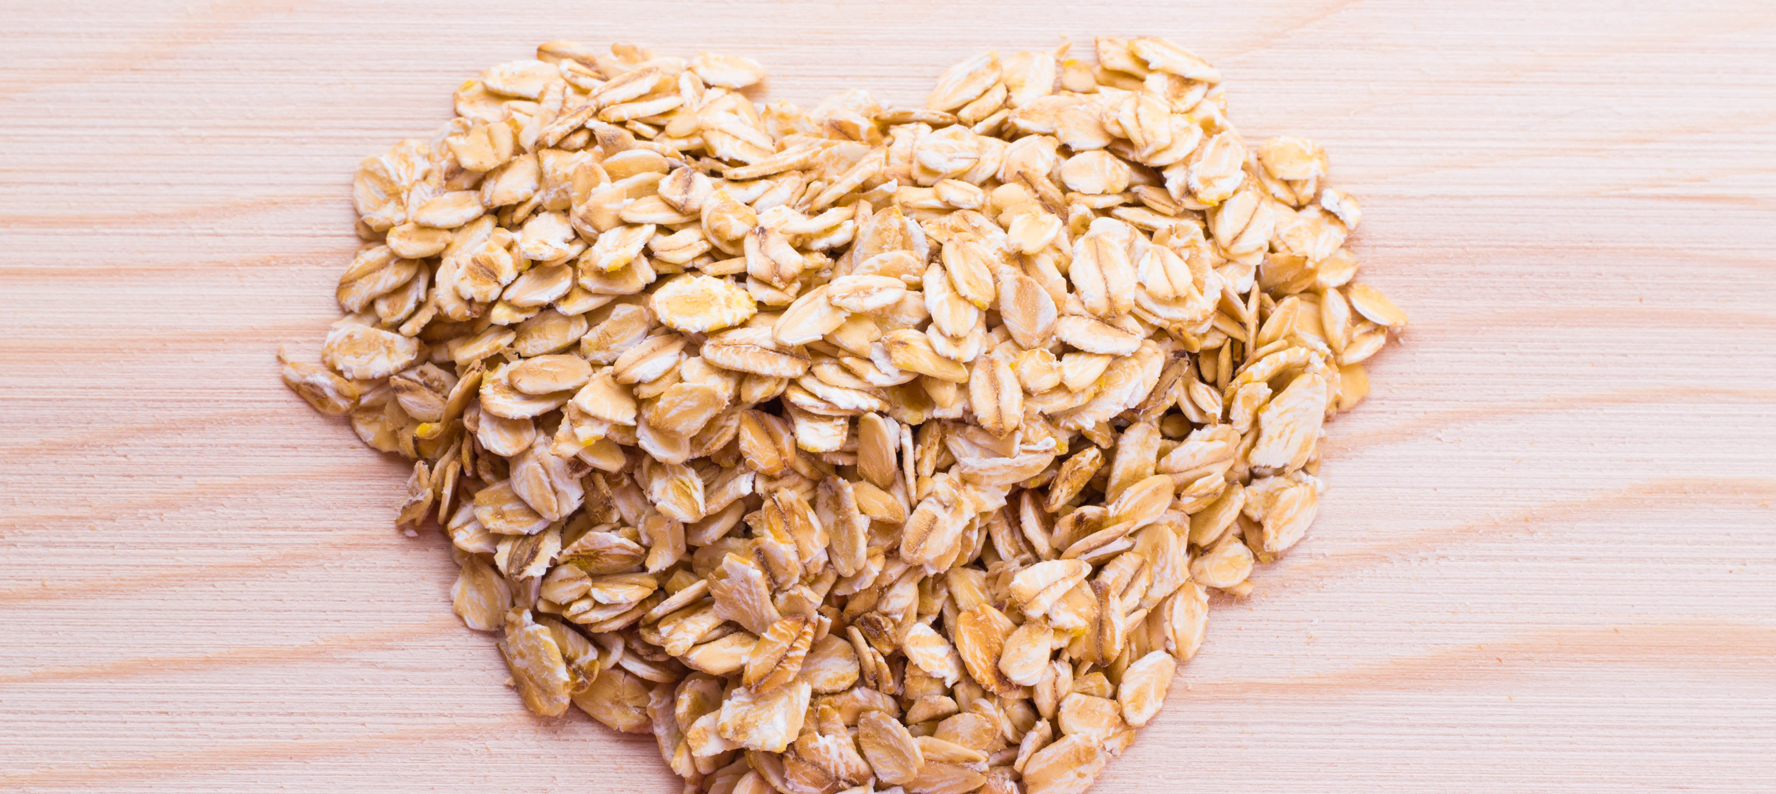 Avena Sativa Oat Beta Glucan is used in natural skin care products for its soothing, anti inflammatory and collagen synthesis properties.